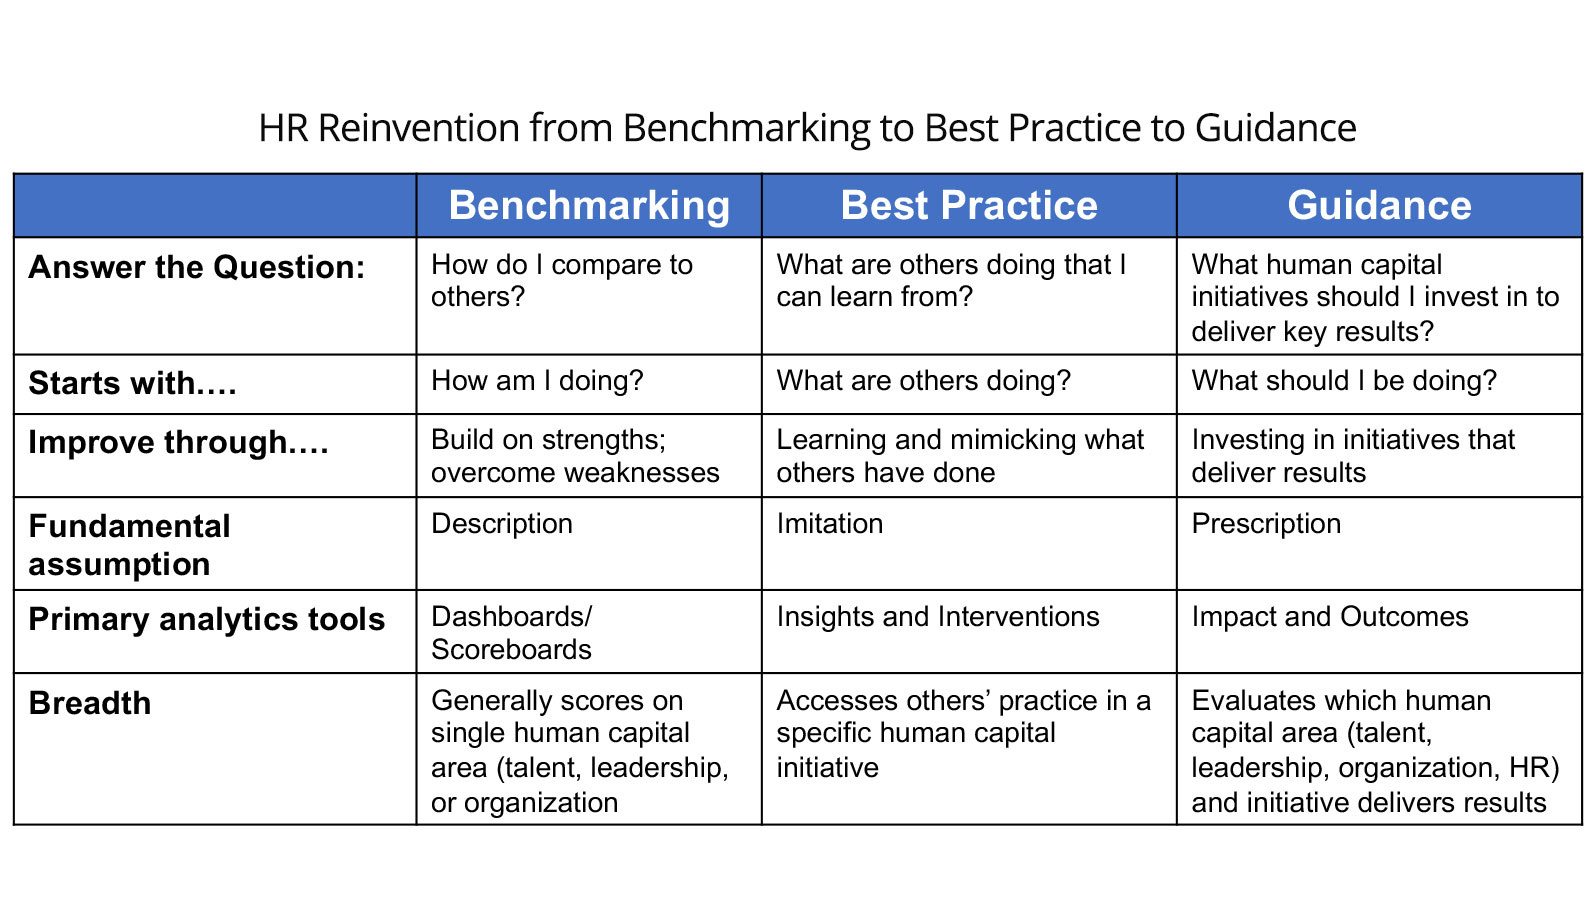 HR Reinvention from benchmarking to best practice to guidance.